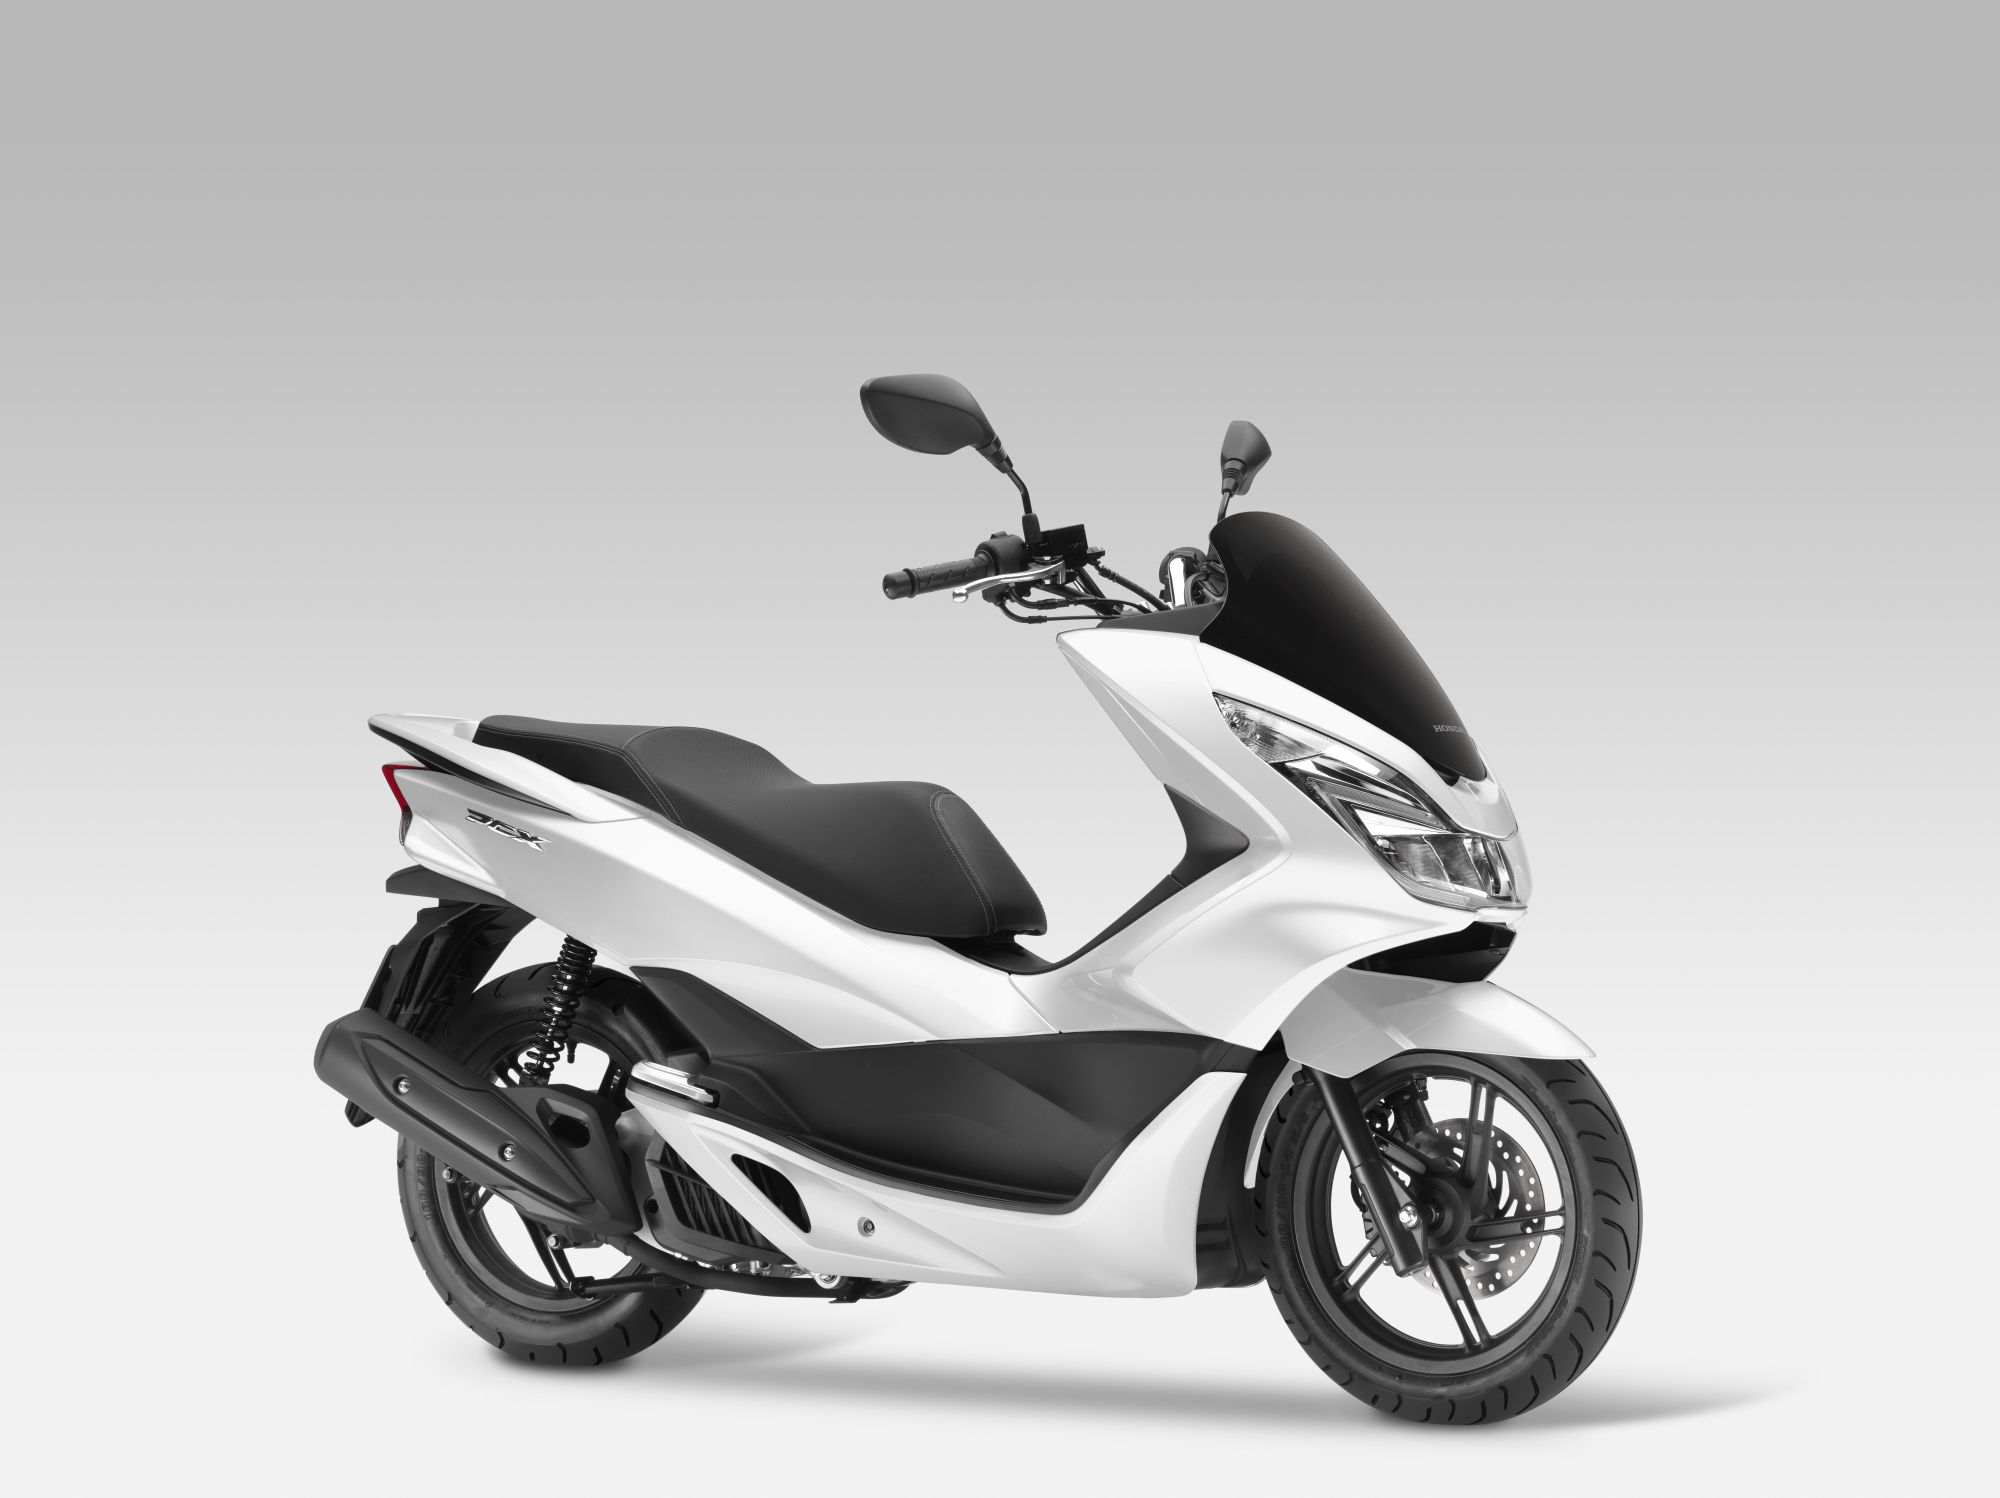 honda pcx 125 bilder und technische daten. Black Bedroom Furniture Sets. Home Design Ideas